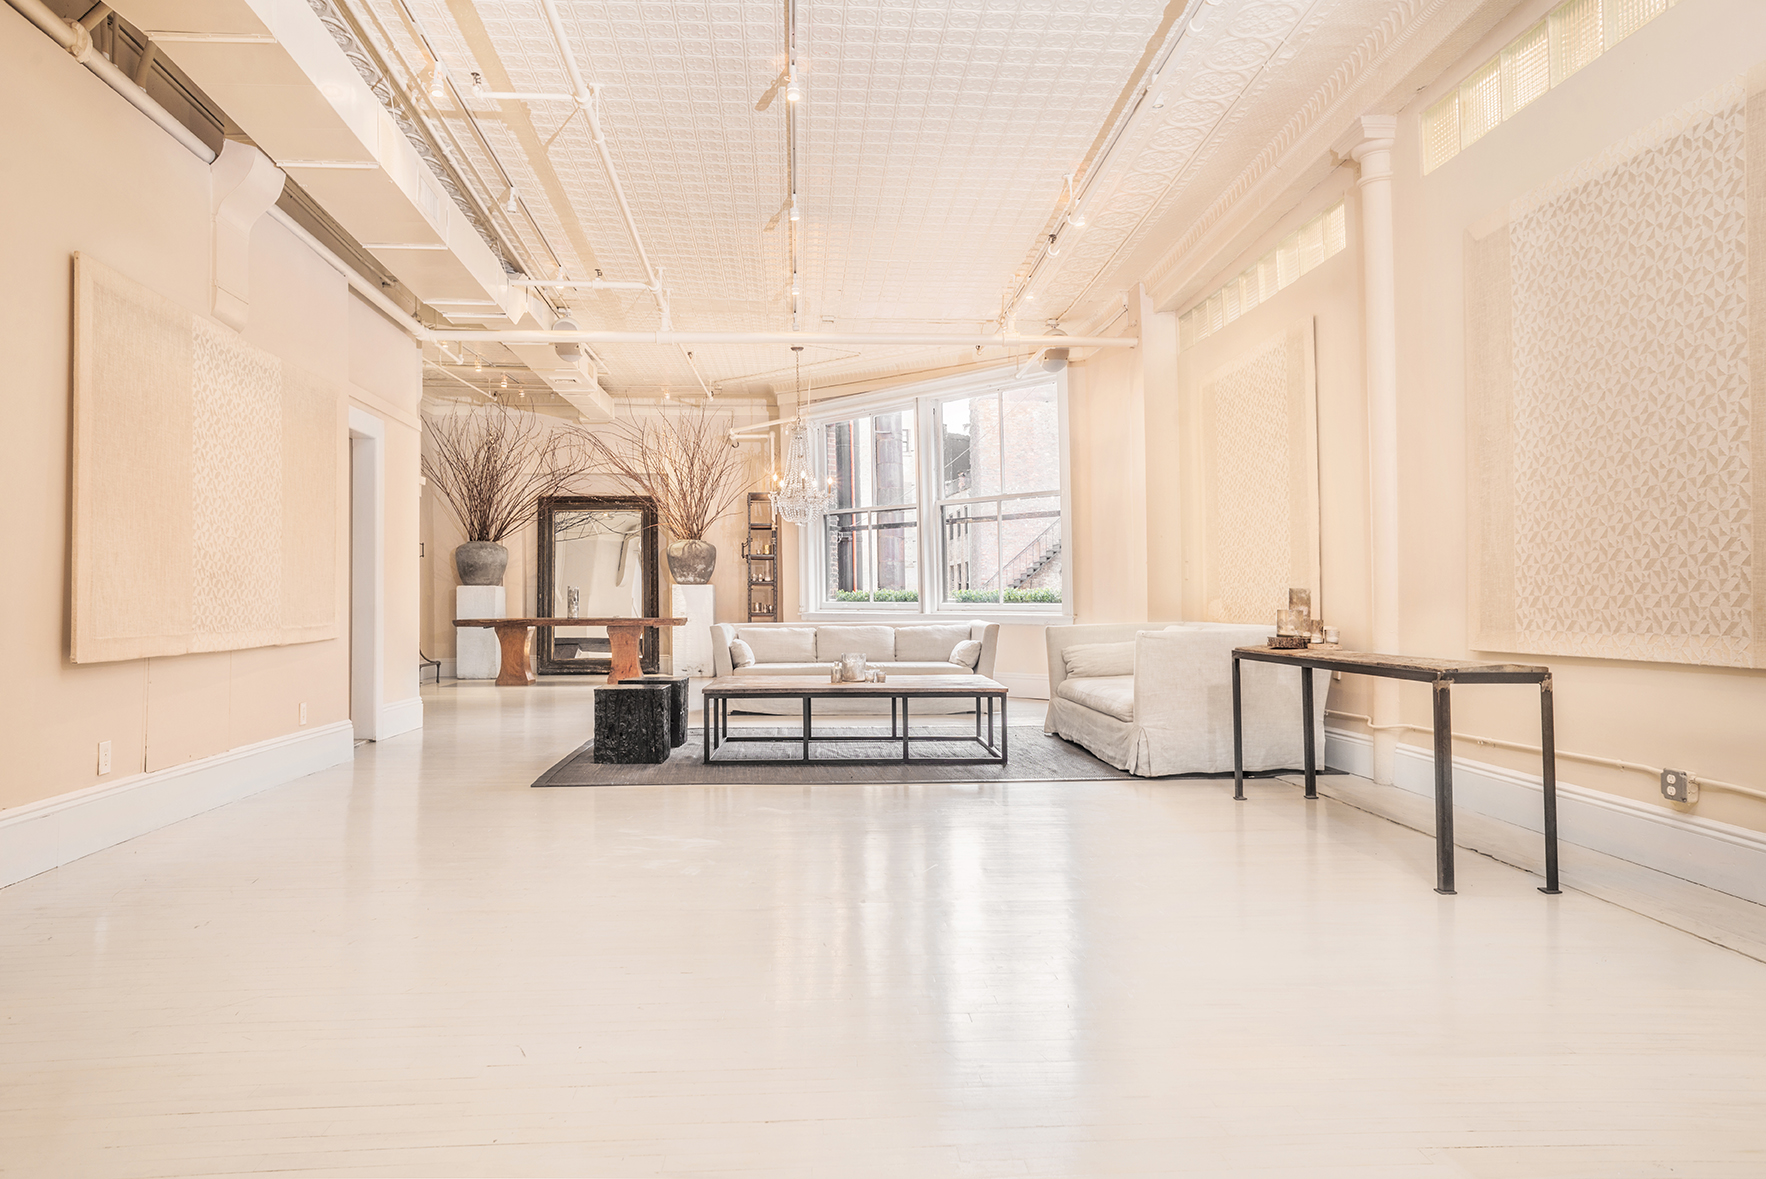 The Sixth Floor Loft event space in New York City, NYC, NY/NJ Area